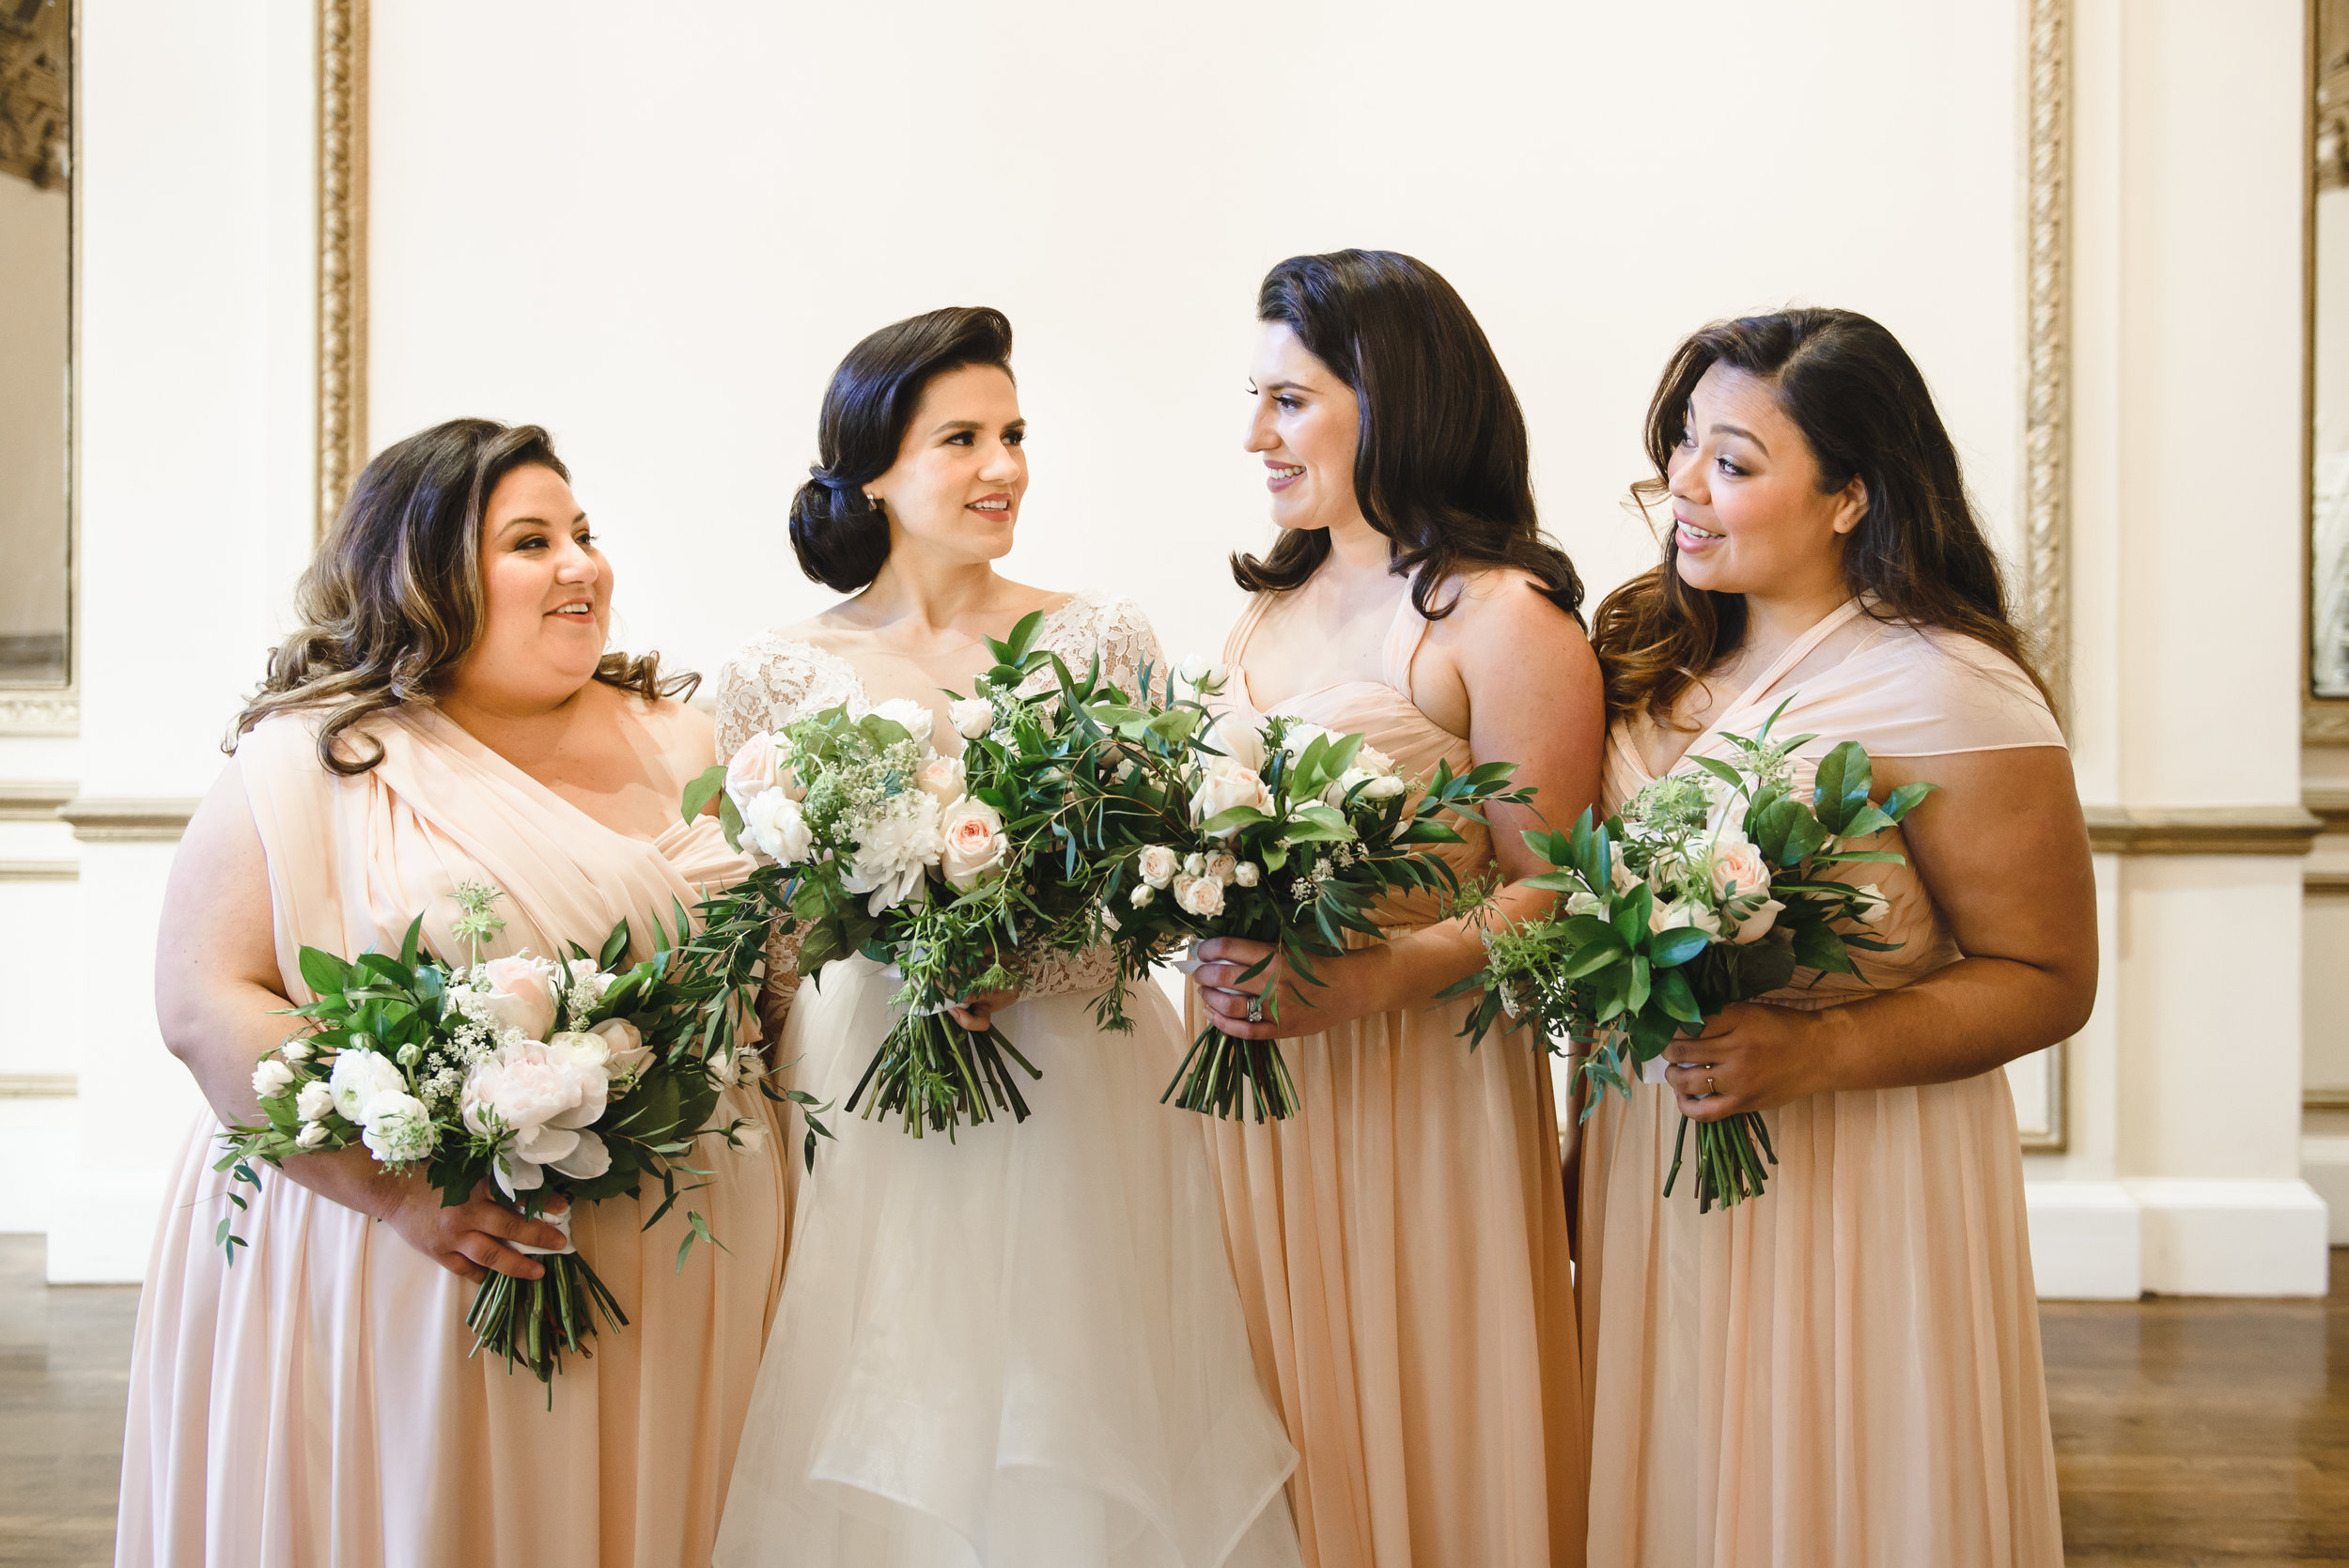 blush bridesmaids in DTLA #lrqcfloral #Dtla .jpg